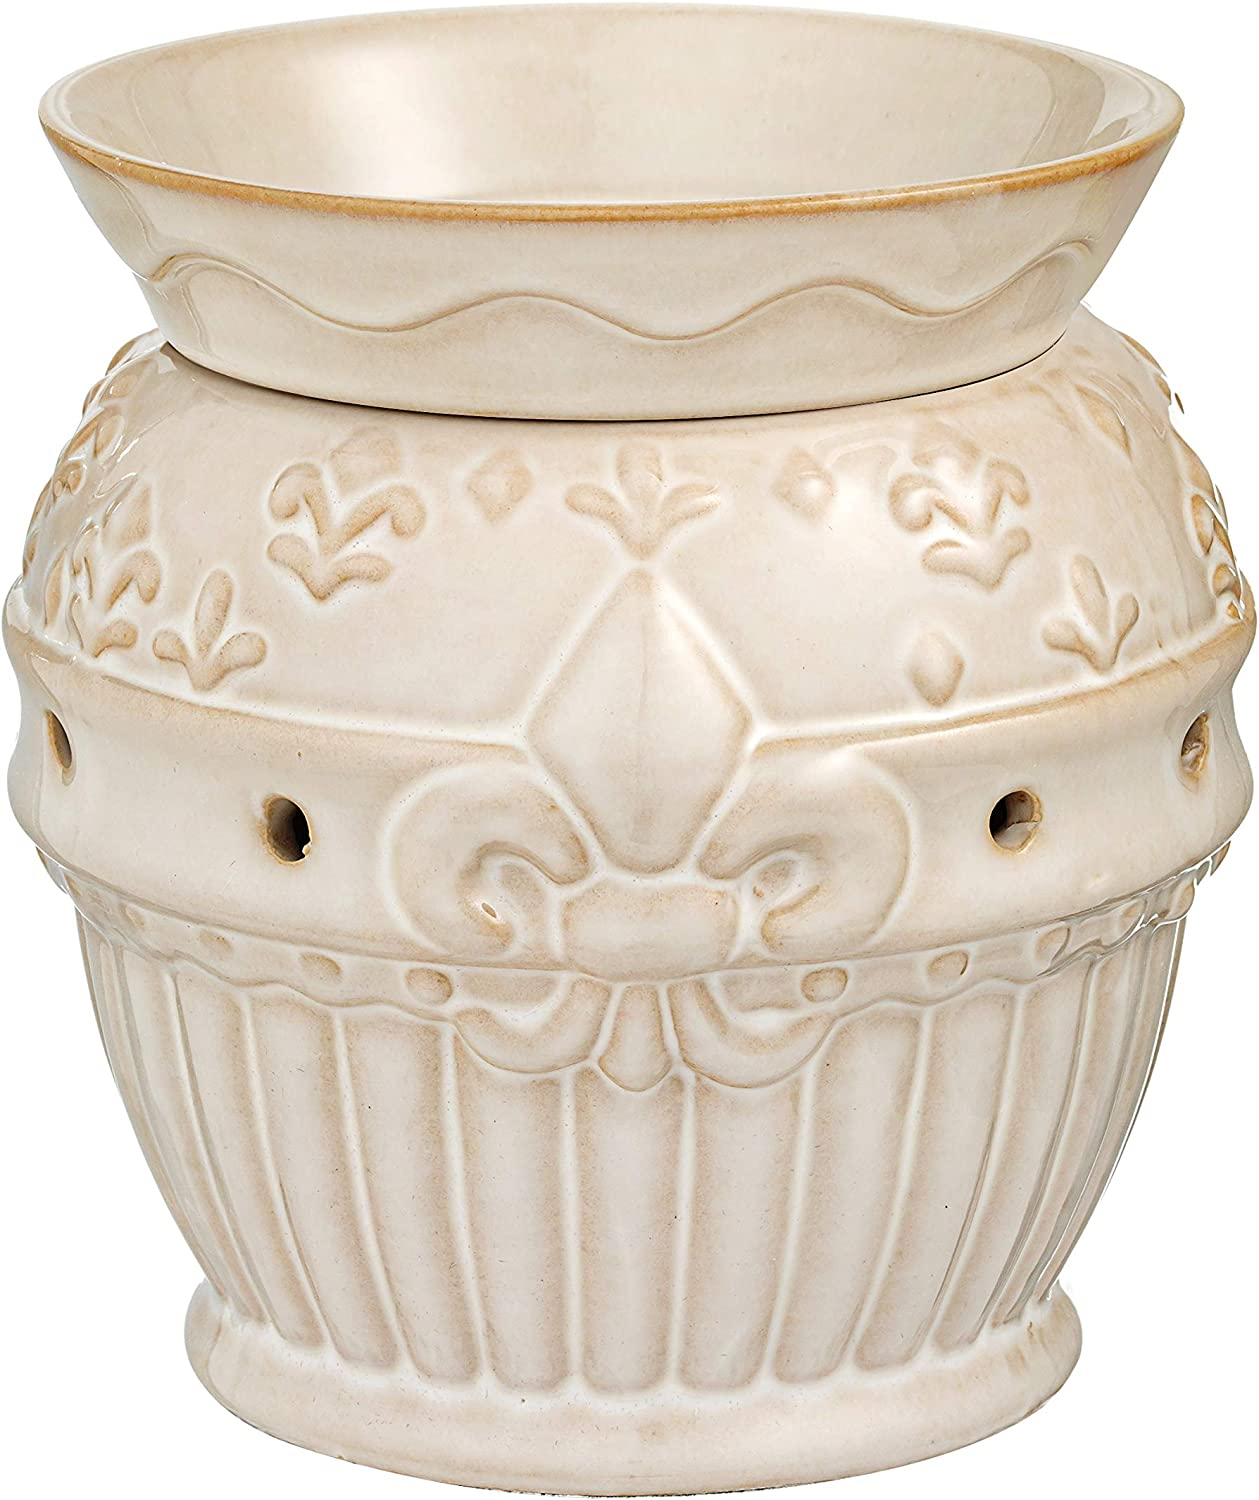 Fleur De Lis Ceramic Candle Warmer Electric with Safety Timer   Automatic Plug in Fragrance Warmer for Scented Wax Melts, Cubes, Tarts   Air Freshener Set for Home Décor, Office, and Gifts